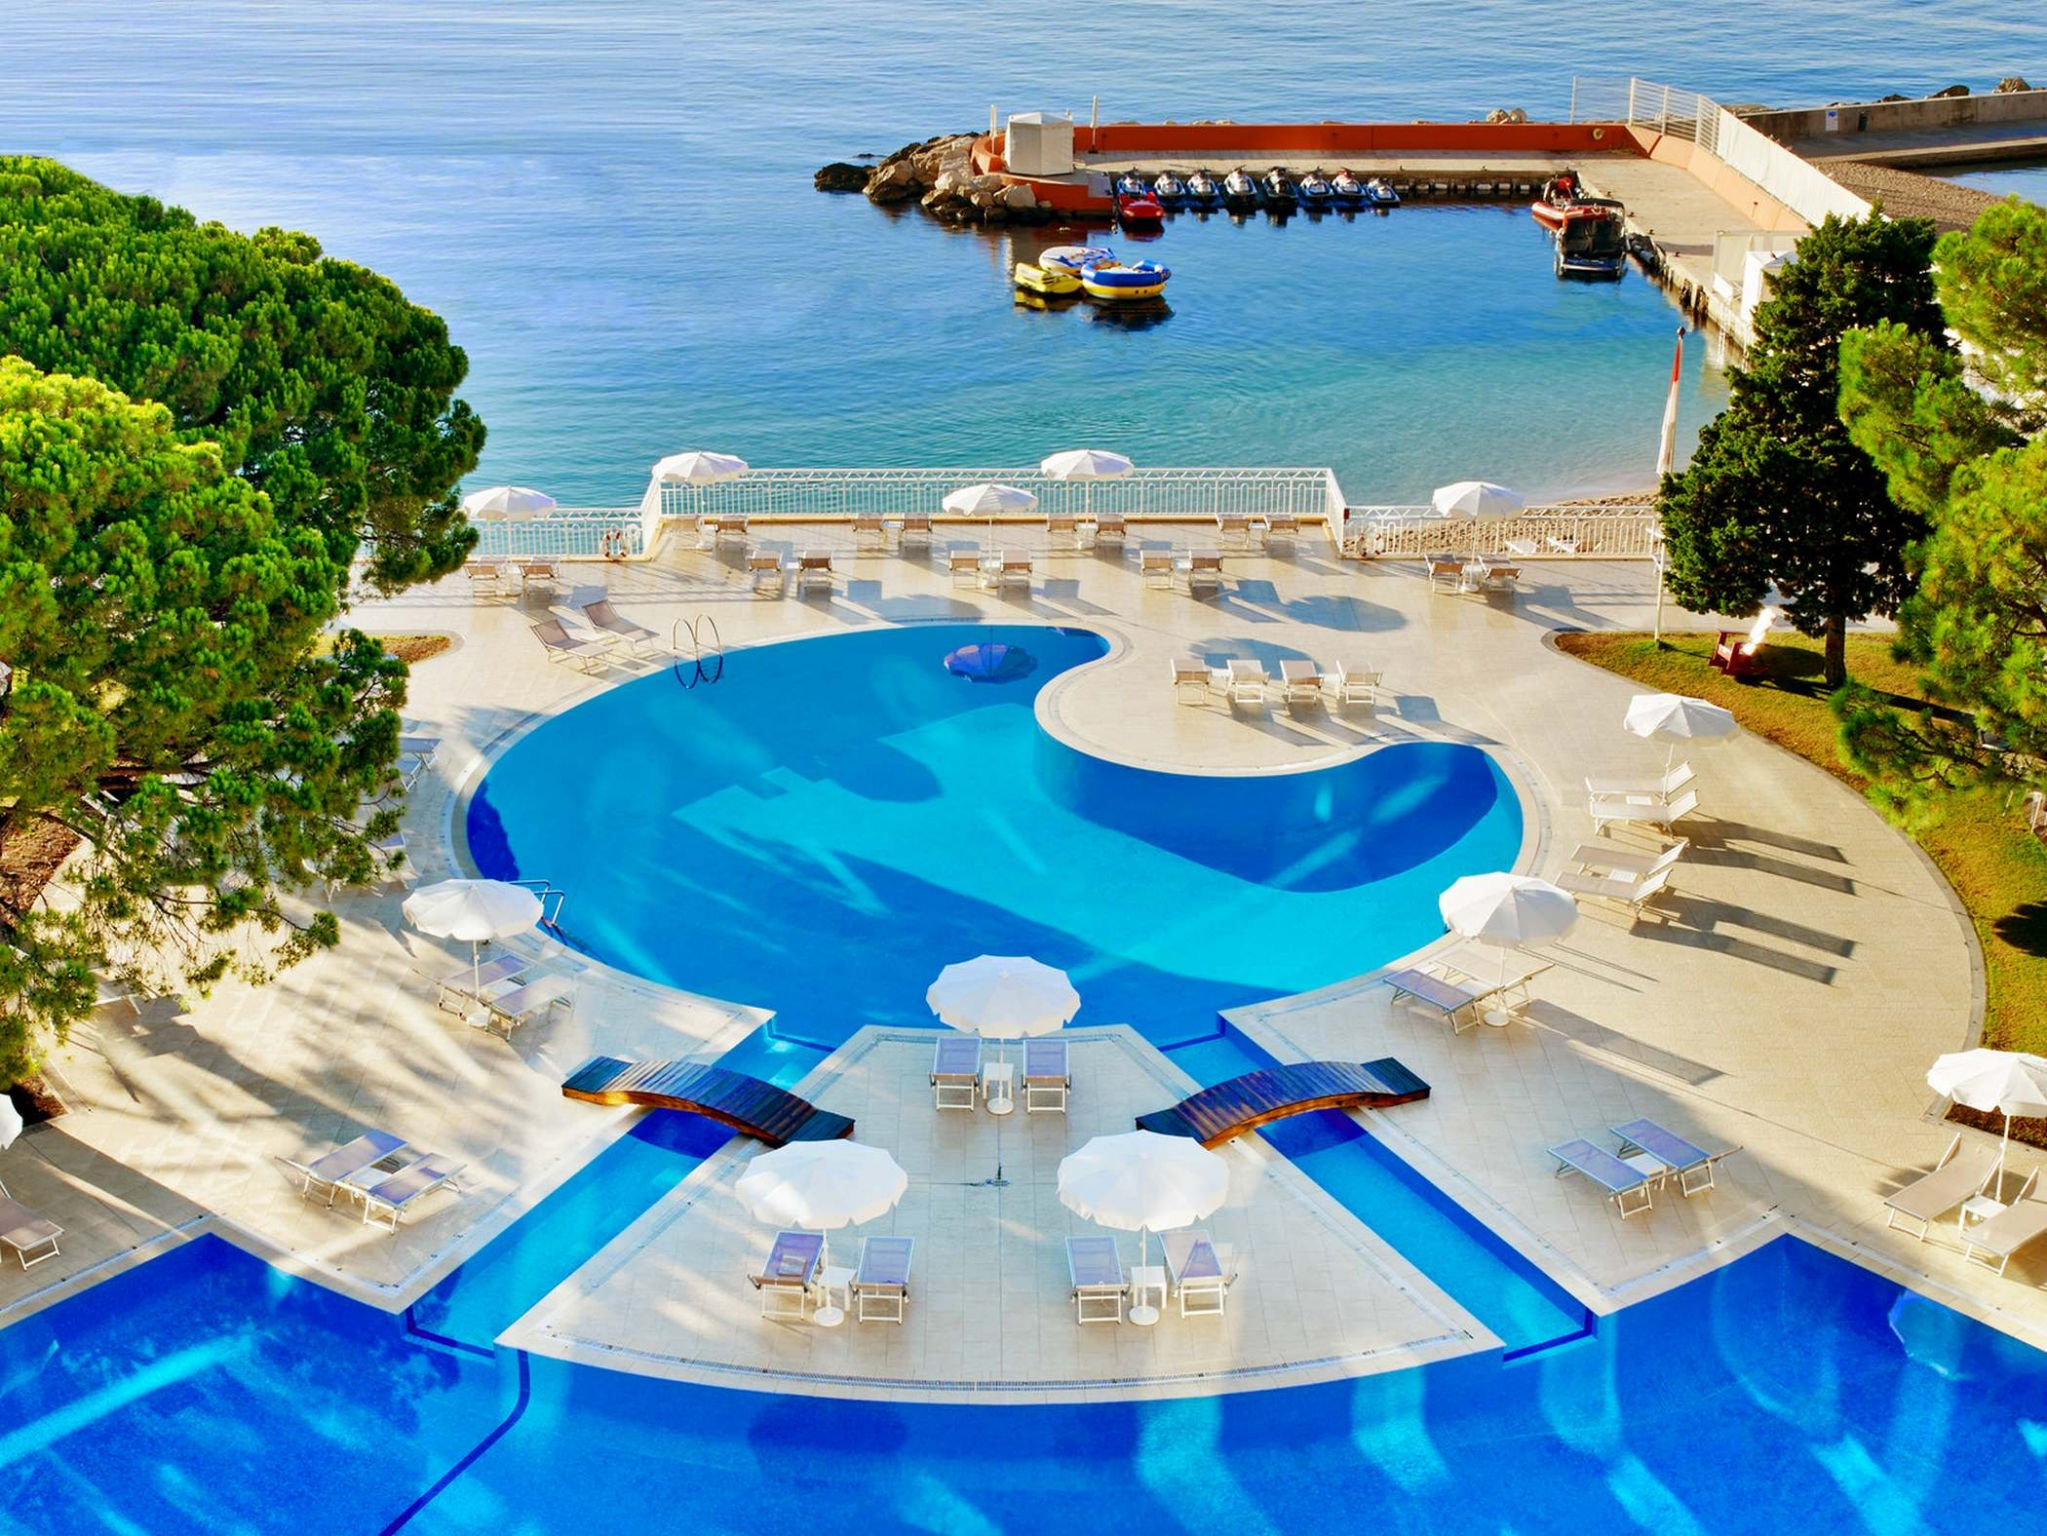 Outdoor Pool with sea view - Le Méridien Beach Plaza